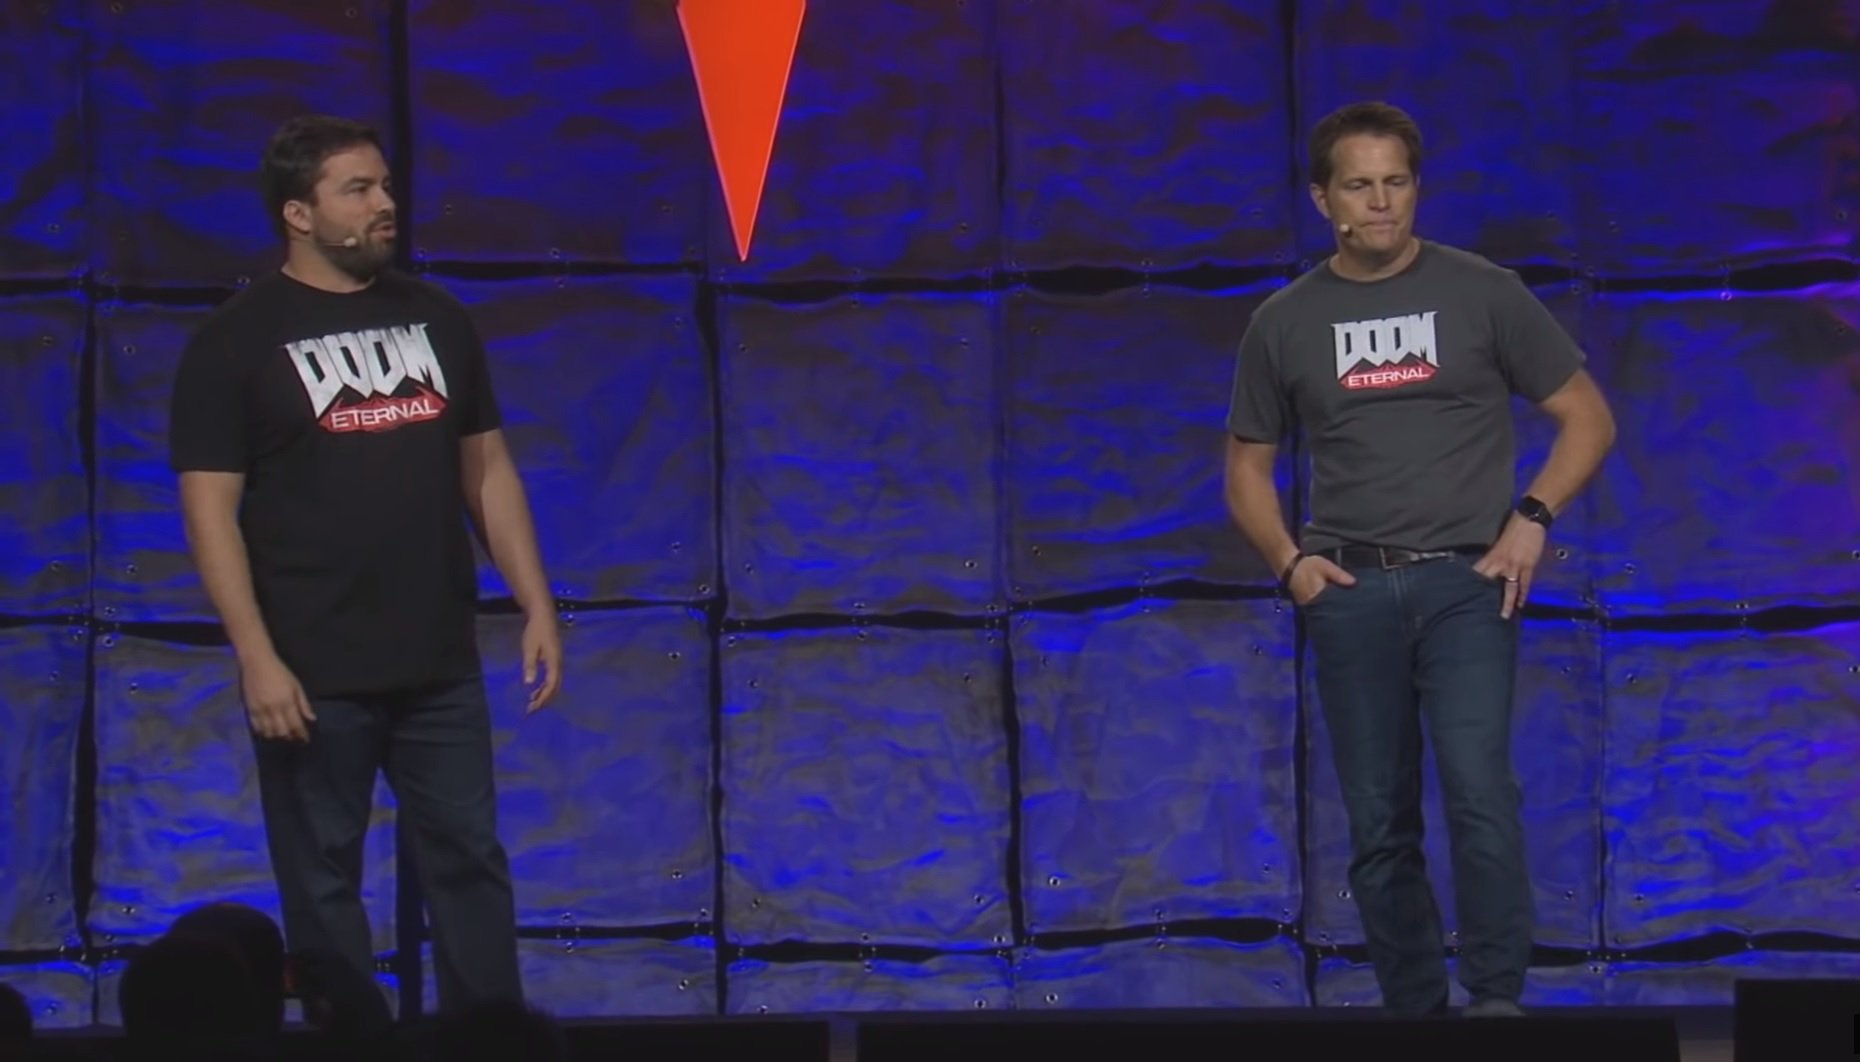 Hugo Martin and Marty Stratton reveal Doom Eternal and QuakeCon 2018.